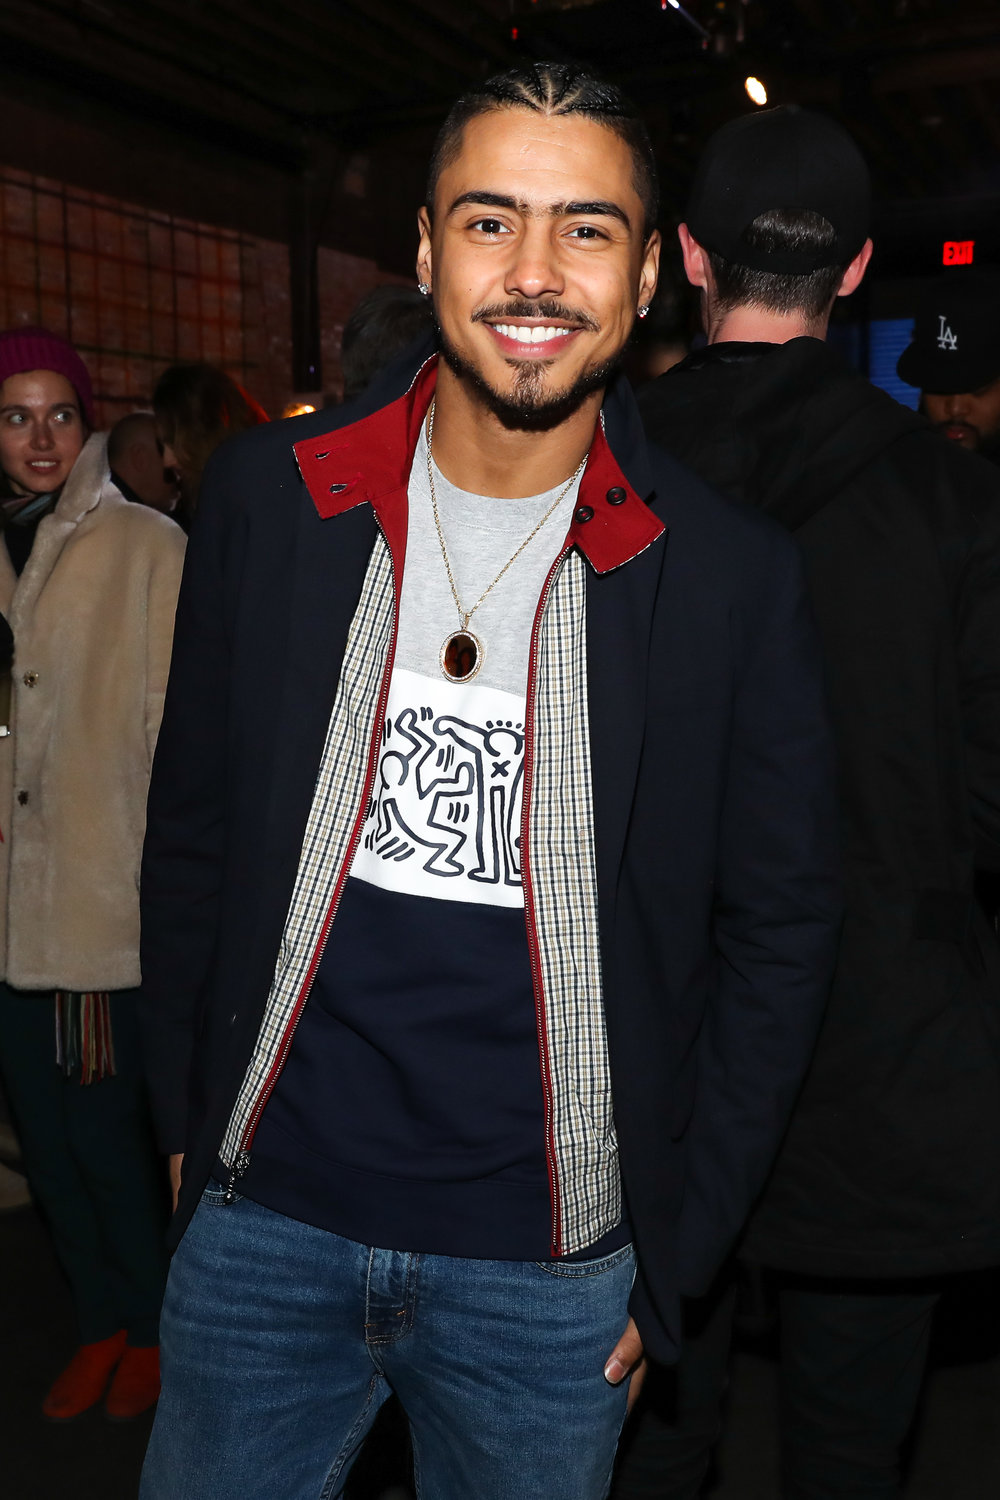 Quincy Brown attends The Lacoste x Keith Haring Global Launch Party at Pioneer Works on Tuesday, March 26th, 2019. Photographed by Neil Rasmus/BFA.